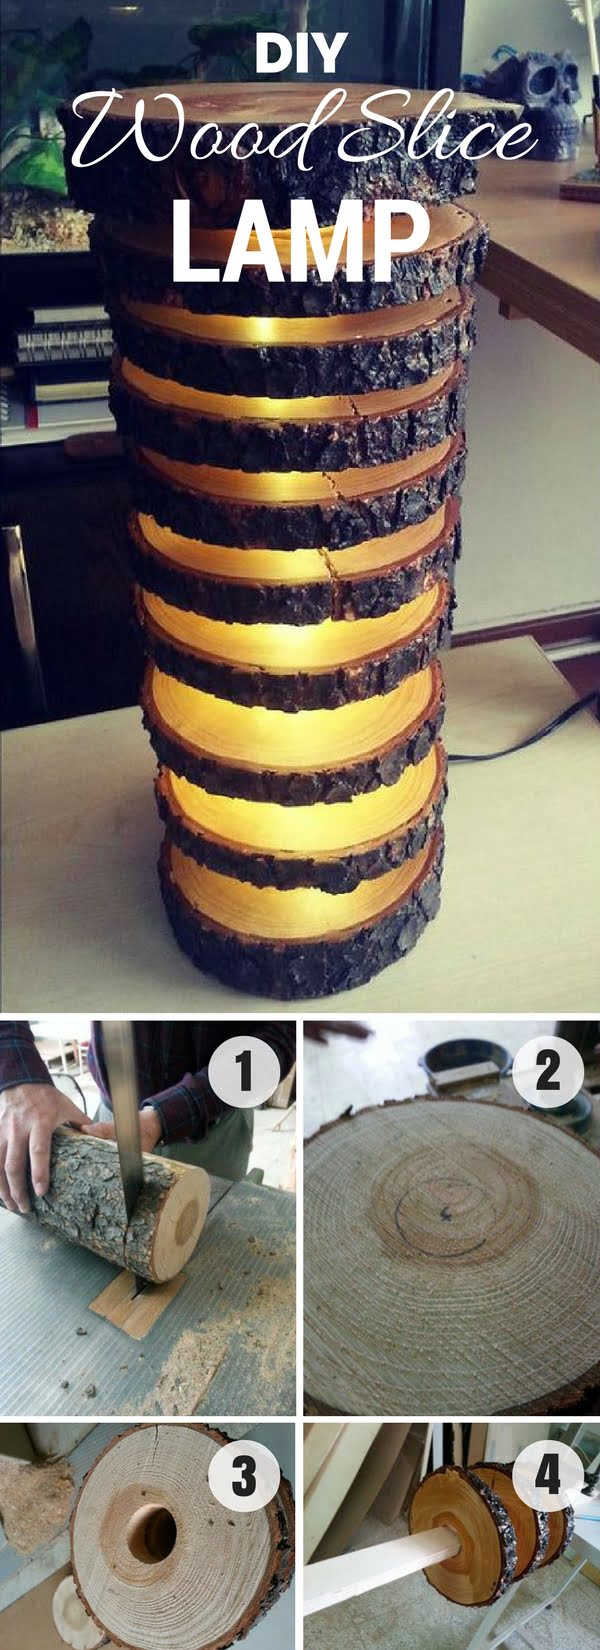 Check out how to build an easy DIY Wood Slice Lamp